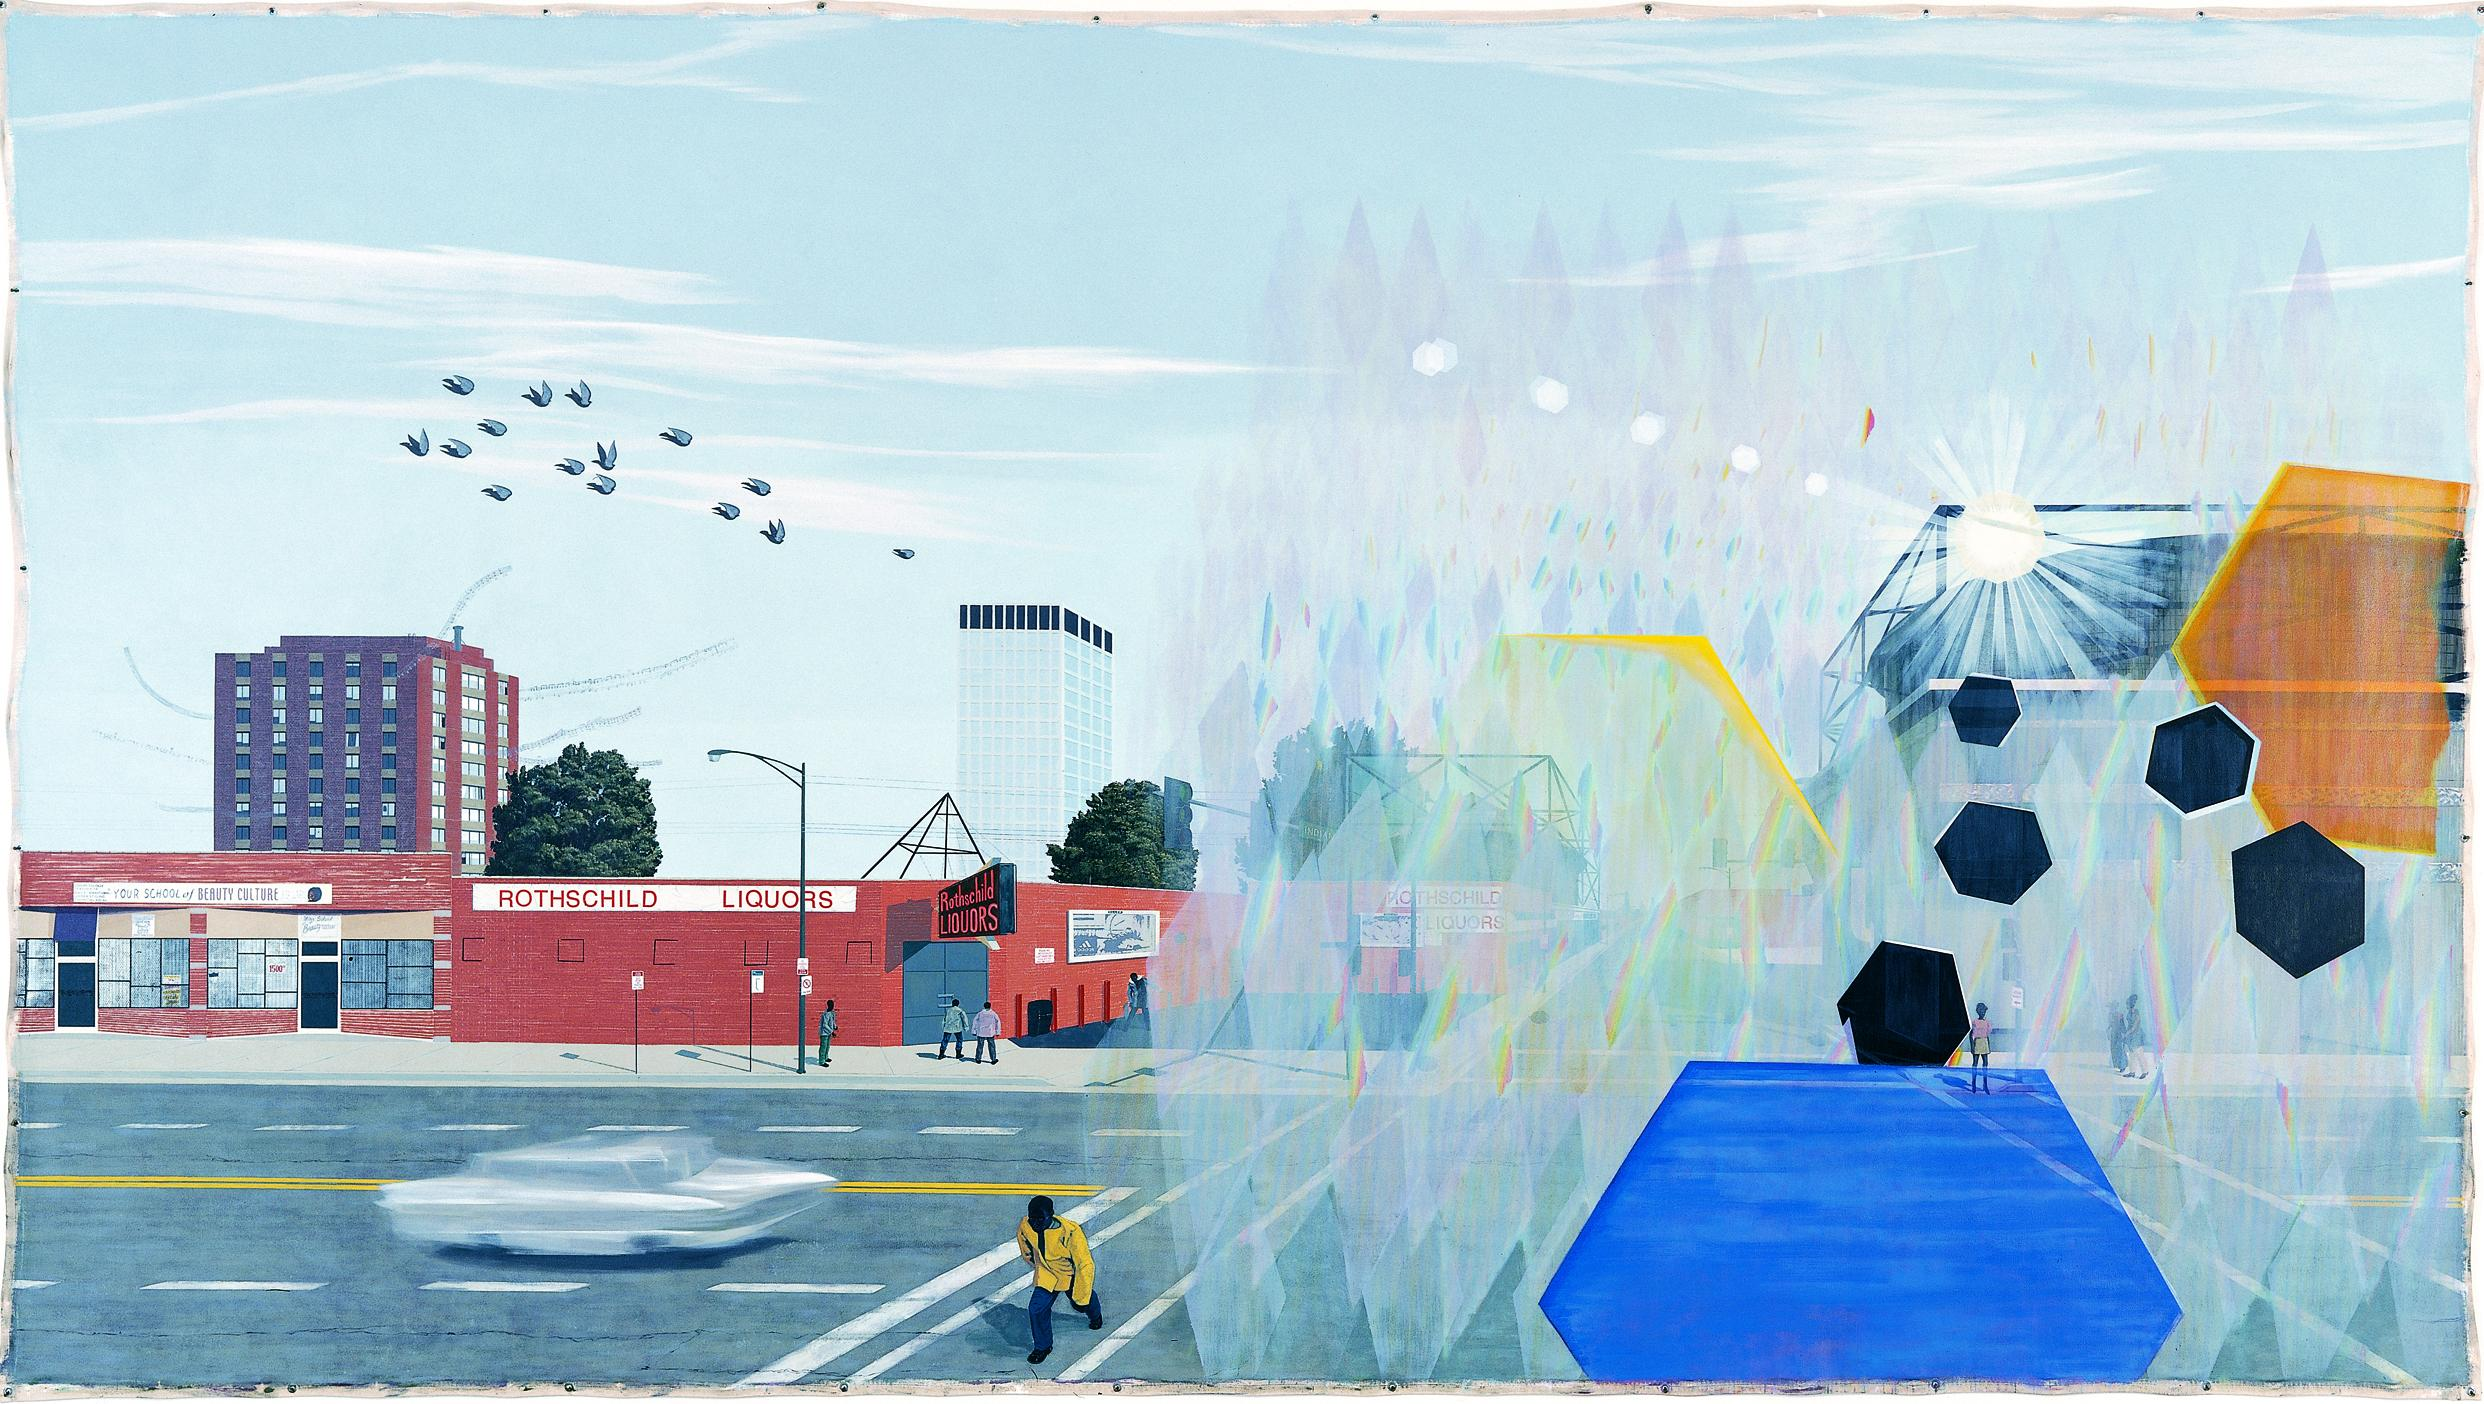 A colorful landscape painting shows a city intersection.